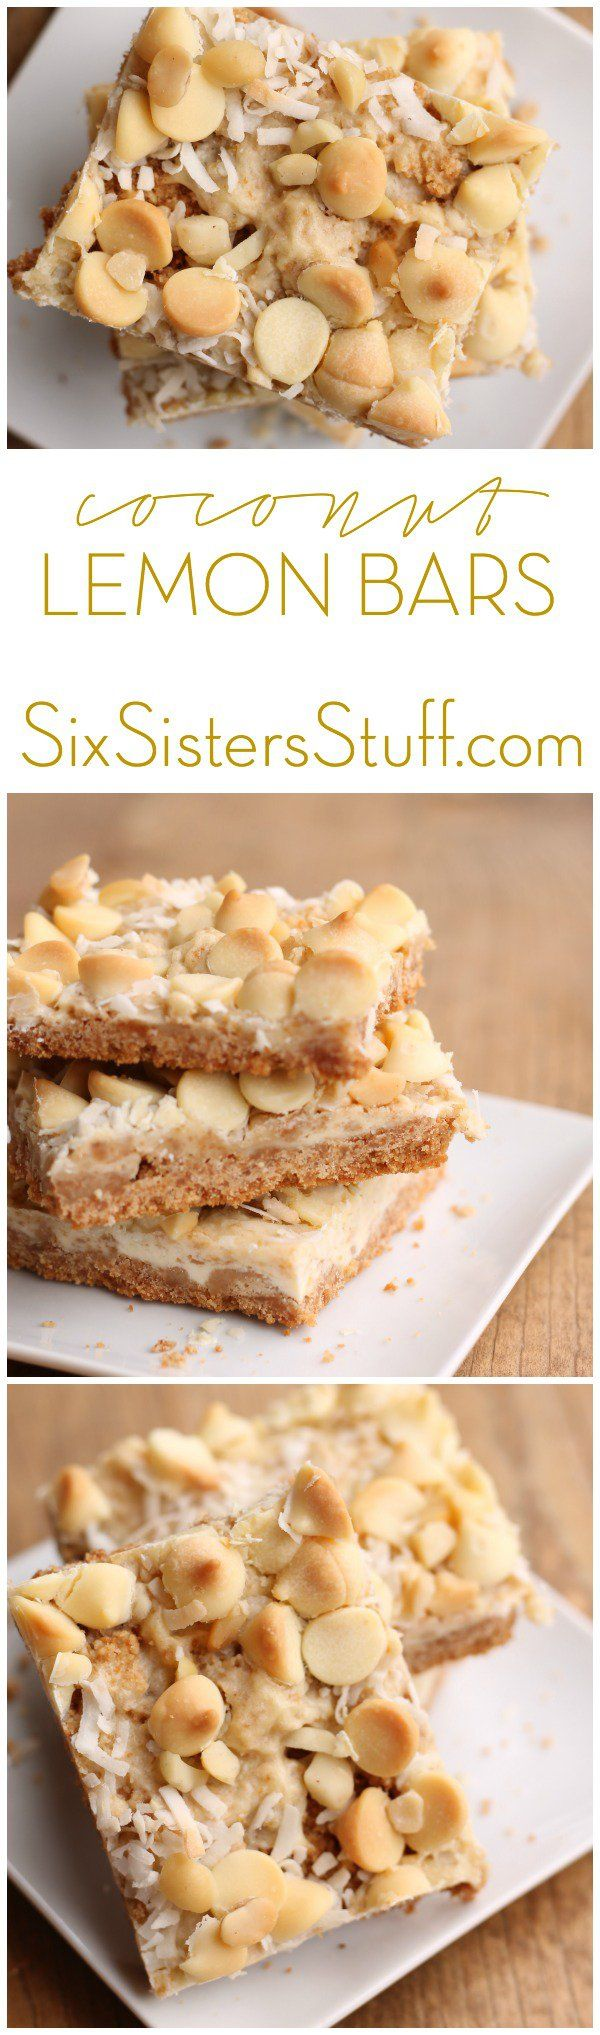 These lemon bars have a little bit of everything, and then some. Their nilla wafer crust and lemony-cheesecake filling is topped off with coconut, white chocolate chips, and macadamia nuts. Coconut Lemon Bars from SixSistersStuff.com